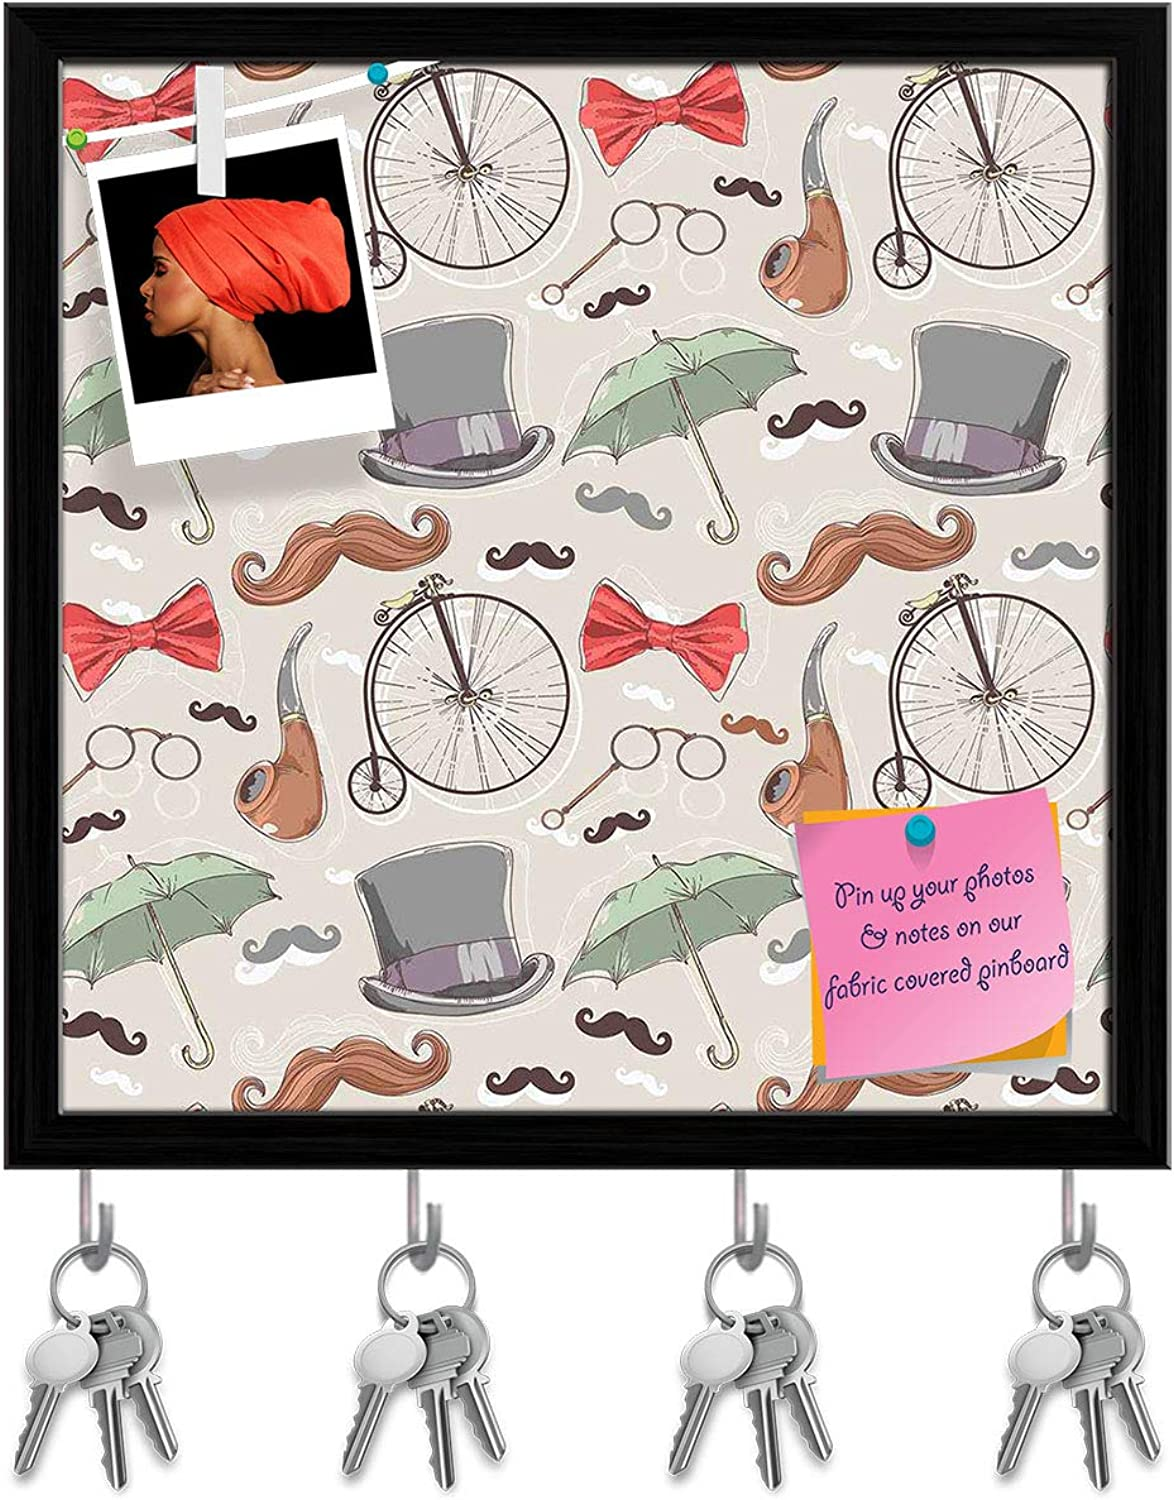 Artzfolio Vintage Retro Objects Key Holder Hooks   Notice Pin Board   Black Frame 20 X 20Inch